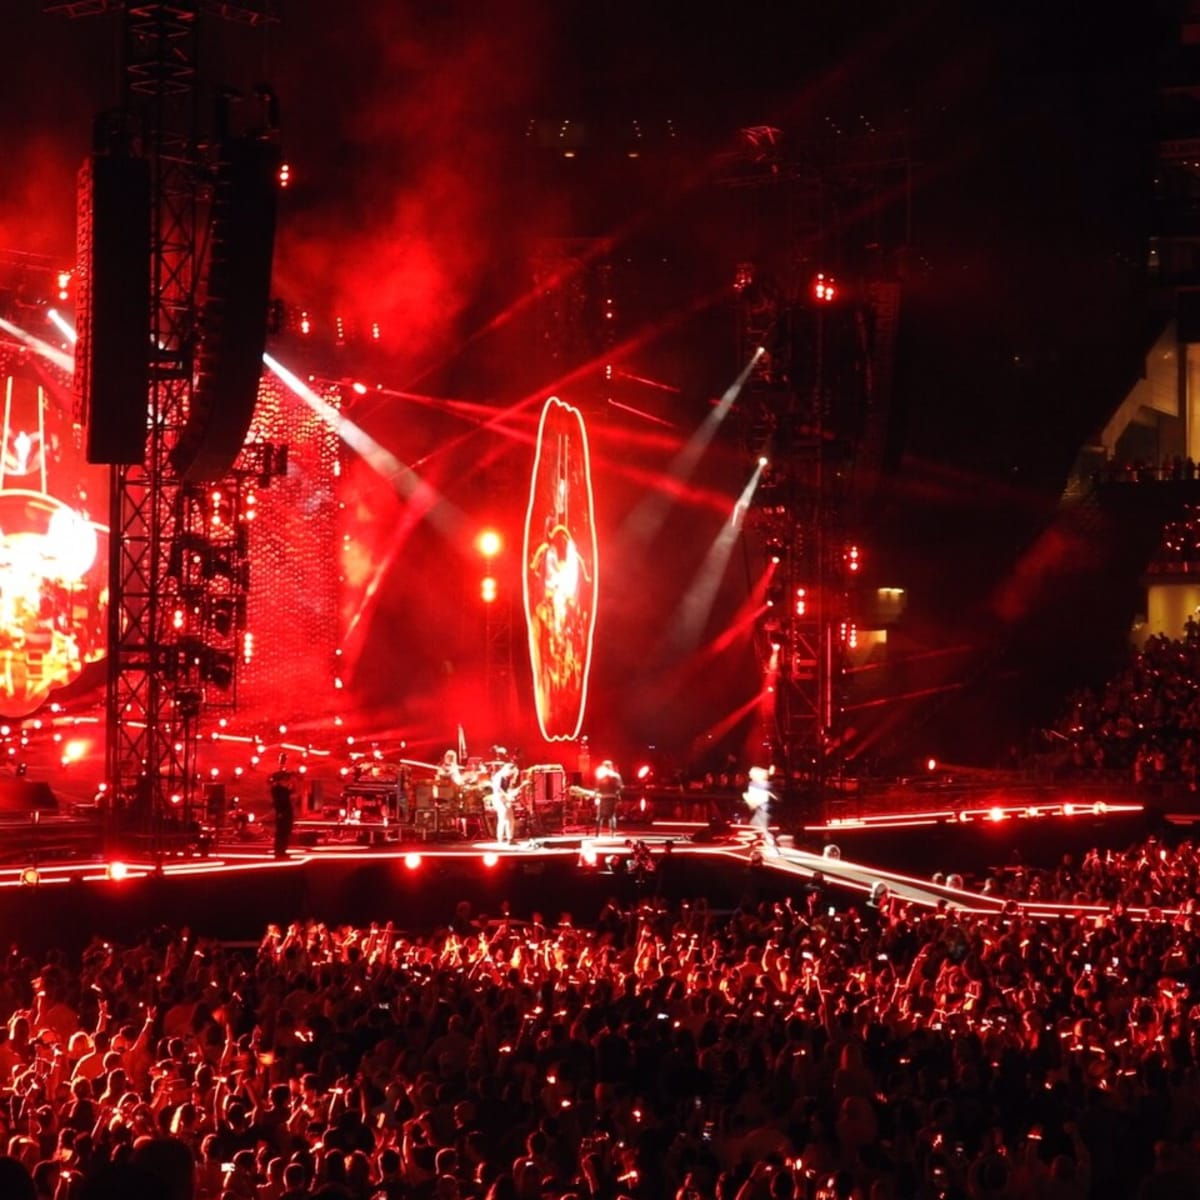 The Coldplay oncert was a feast of color